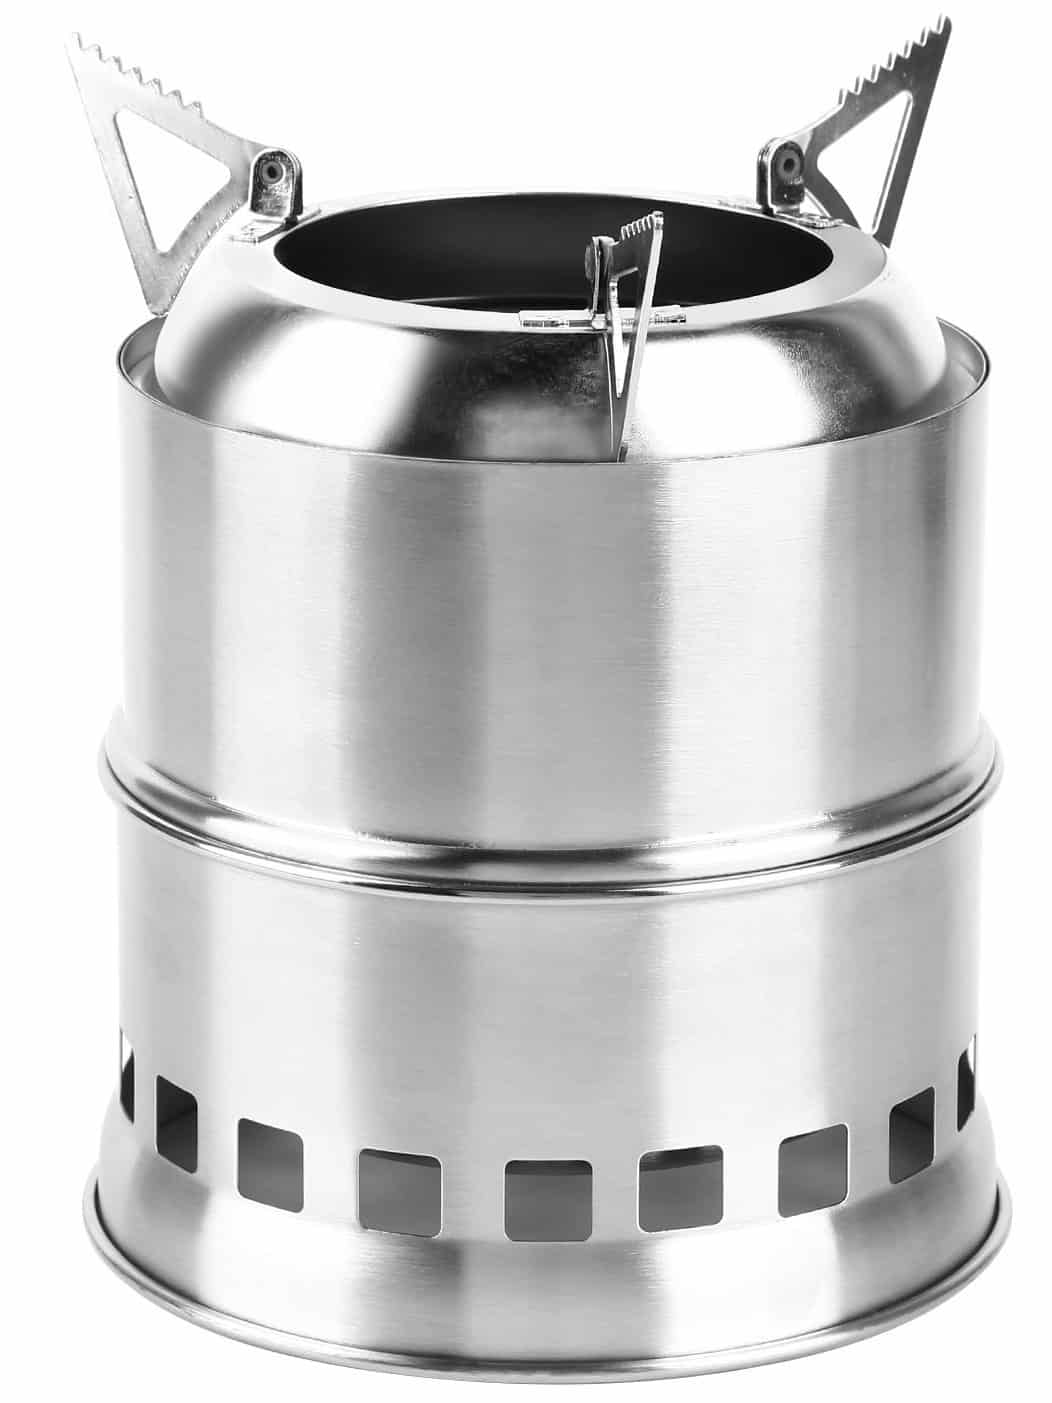 Best Wood Burning Camp Stove – OUTAD